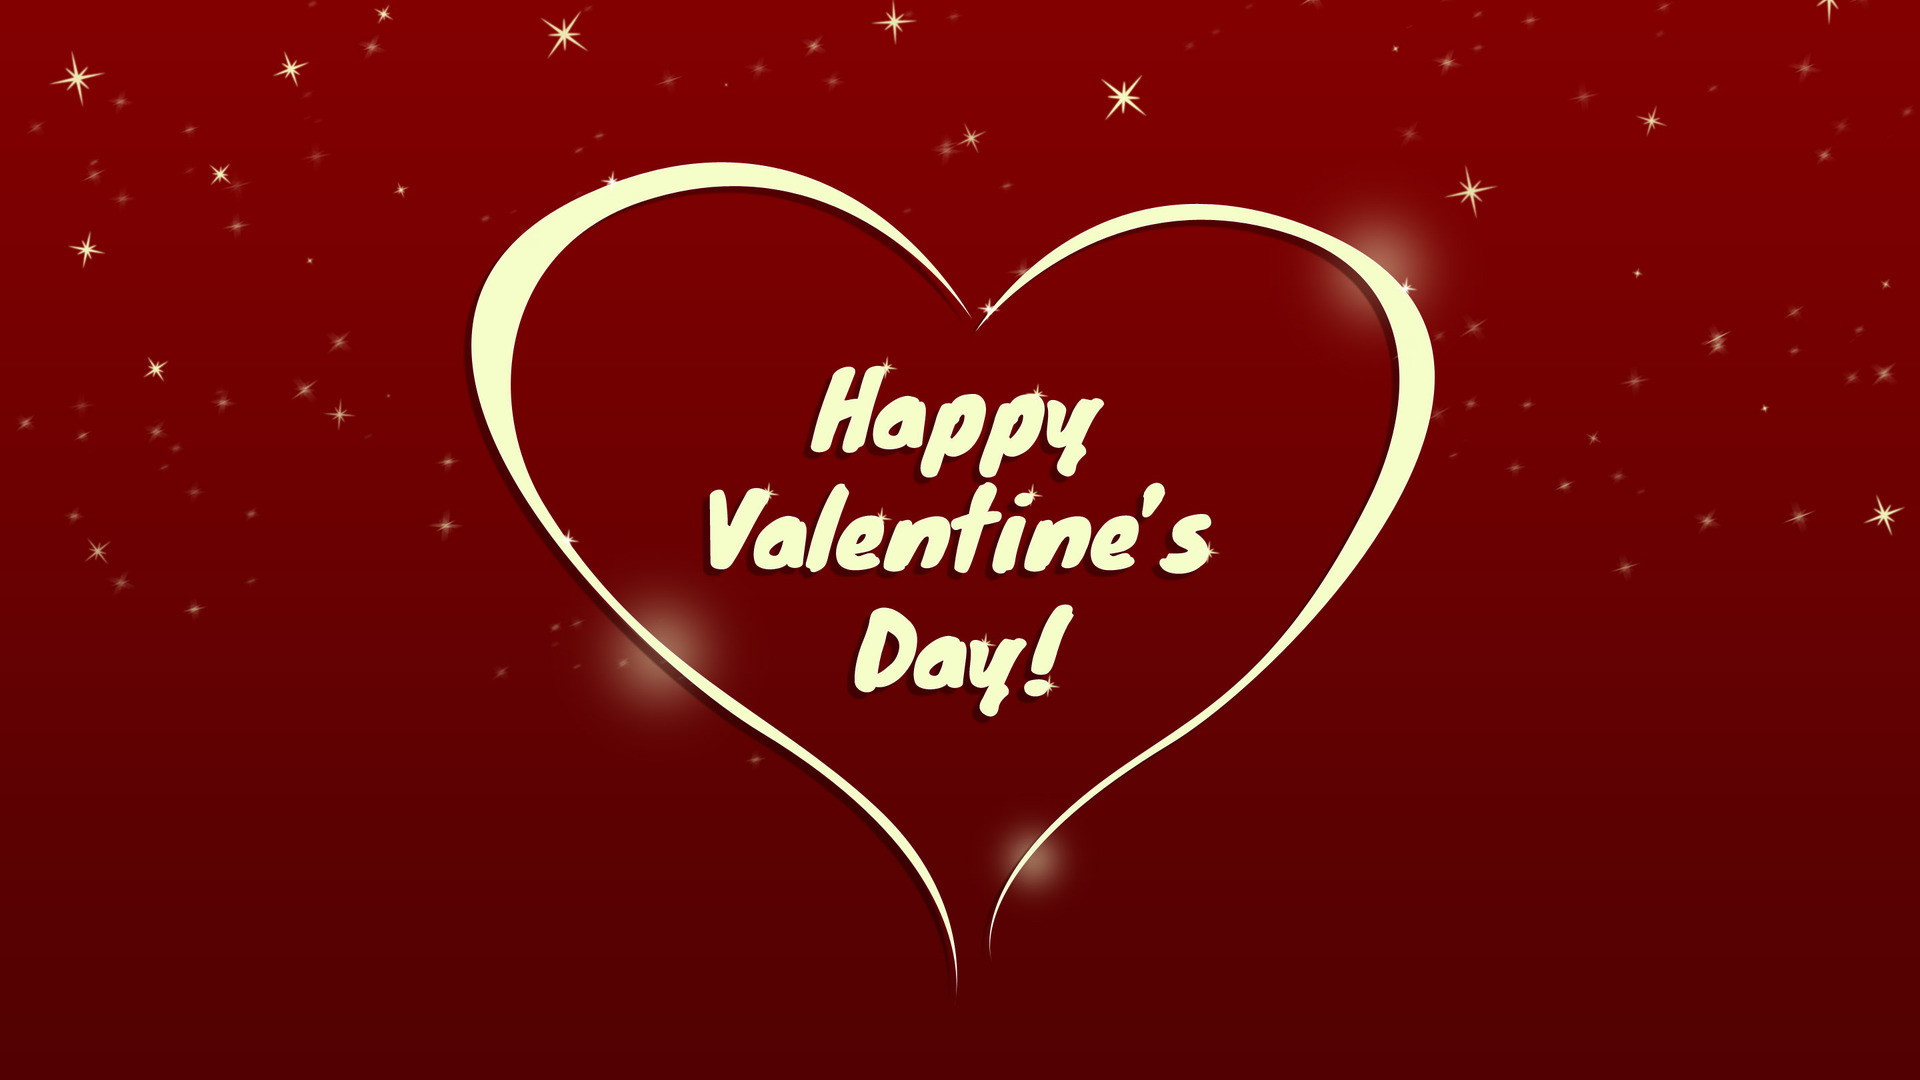 Valentine Day Wallpaper 2018 74 Images